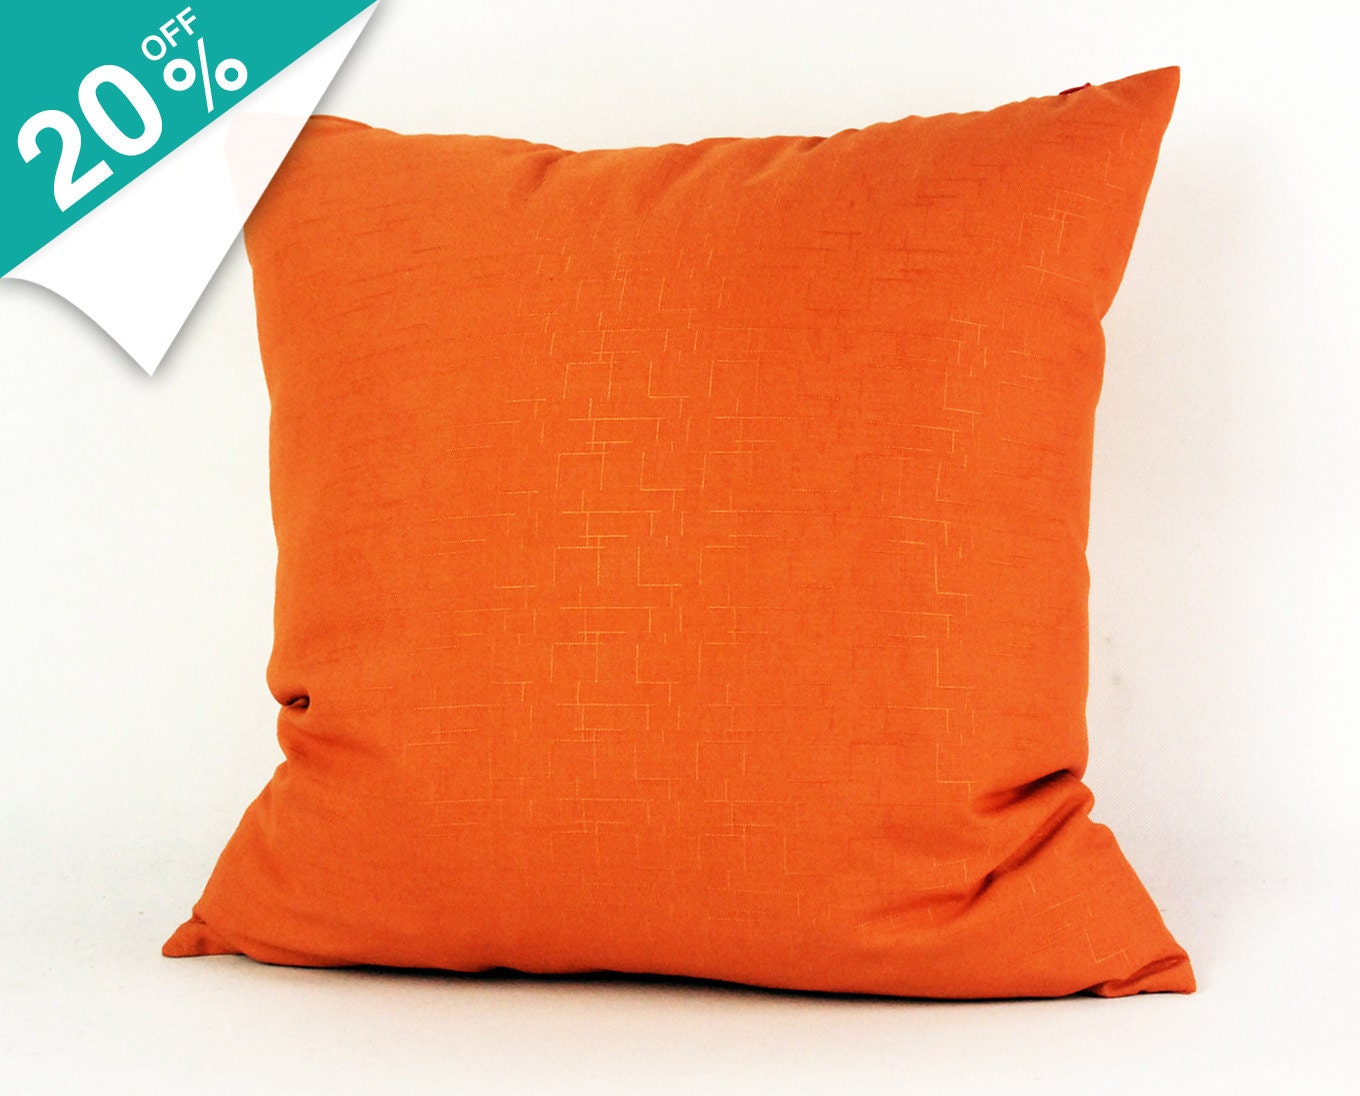 Orange Decorative Pillows Couch : Free Shipping Orange Decorative Throw Pillows Pillow by FullHouses